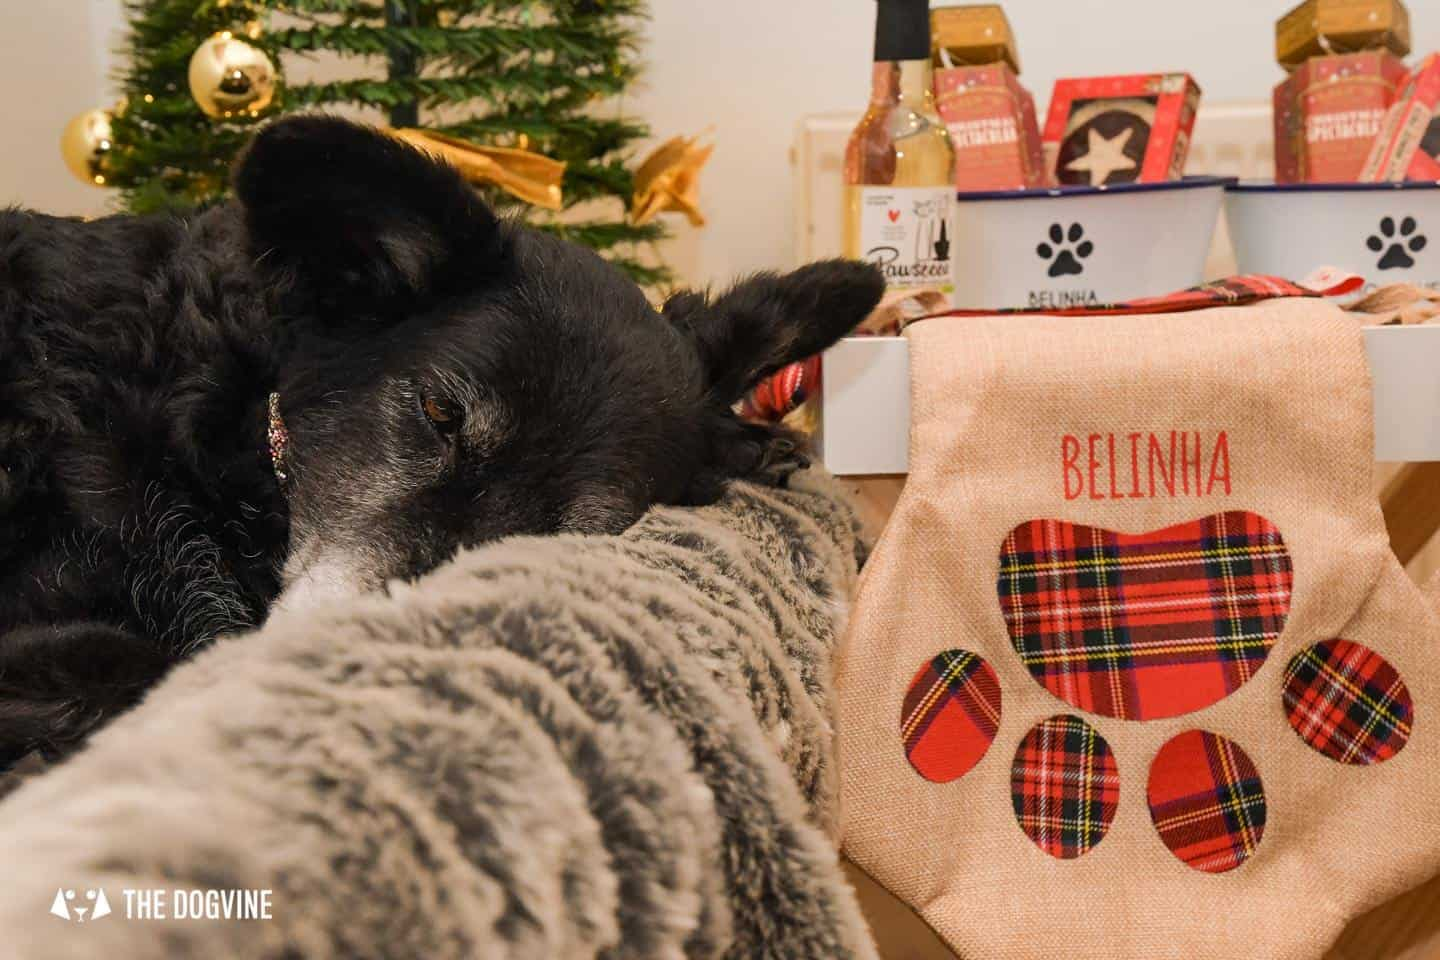 10 Ways For Your Dog's Christmas To Be Fabulous in London - Personalised Dog Christmas Stockings - Belinha